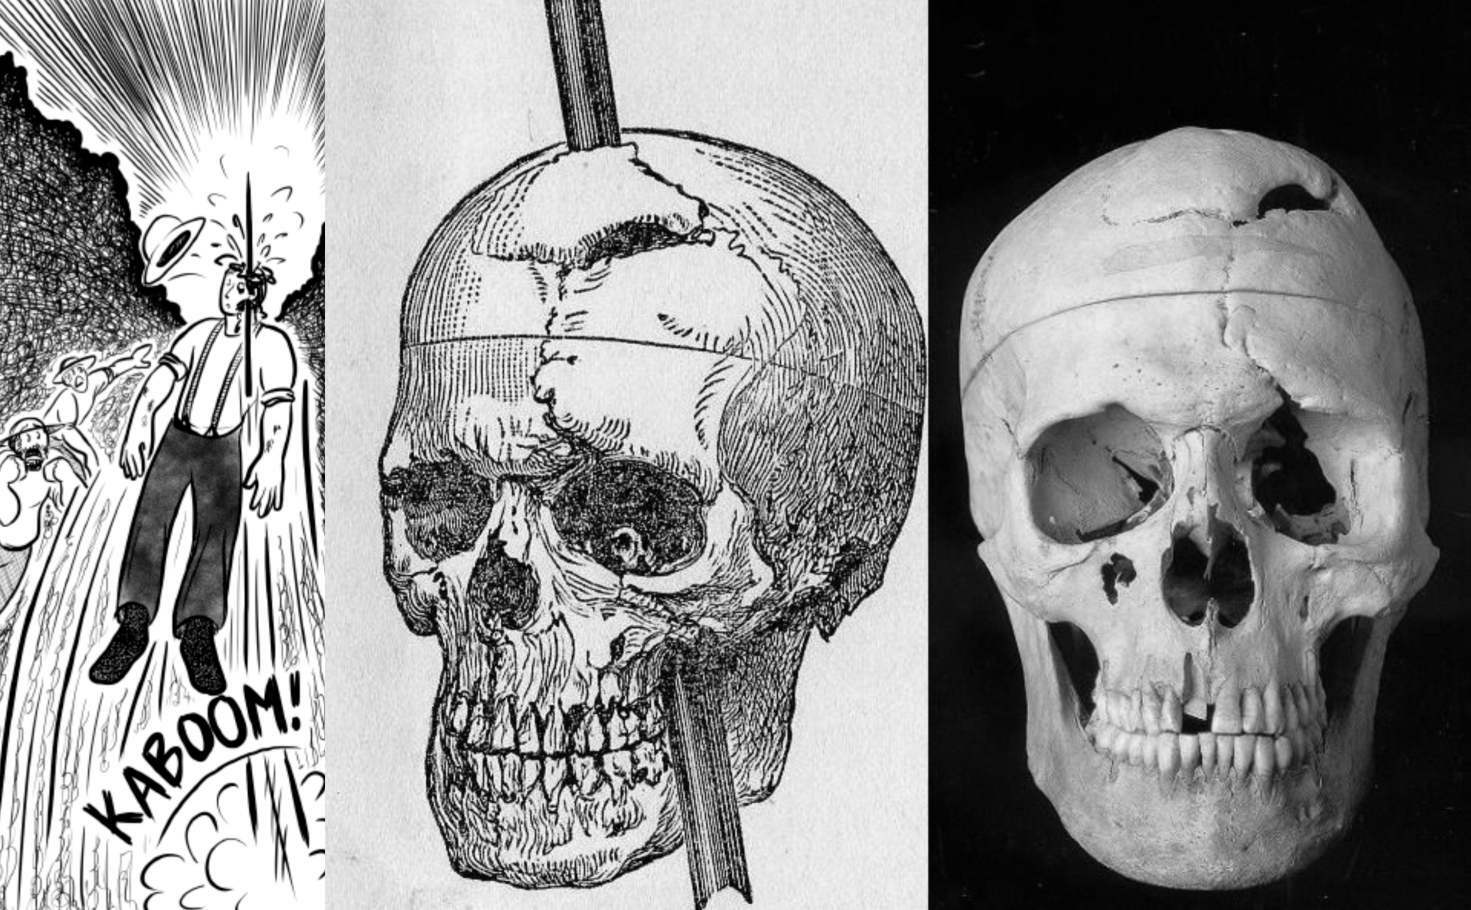 It's worth saying that the tamping iron was javelin-like, because that's precisely how it behaved. The force of the explosion behind the spike drove it out with incredible force, and it headed straight for Gage.The 13-pound spike entered the left side of his face, right through the side of his cheek and open mouth (because he had been about to speak)and went up into his head. It went through the bone, the brain, and then out the other side. But it didn't stop there. All three feet, seven inches of the rod went through his head, then out the other side, and landed roughly 80feet away, smeared with blood and brains. Gage immediately collapsed onto the ground, convulsing.